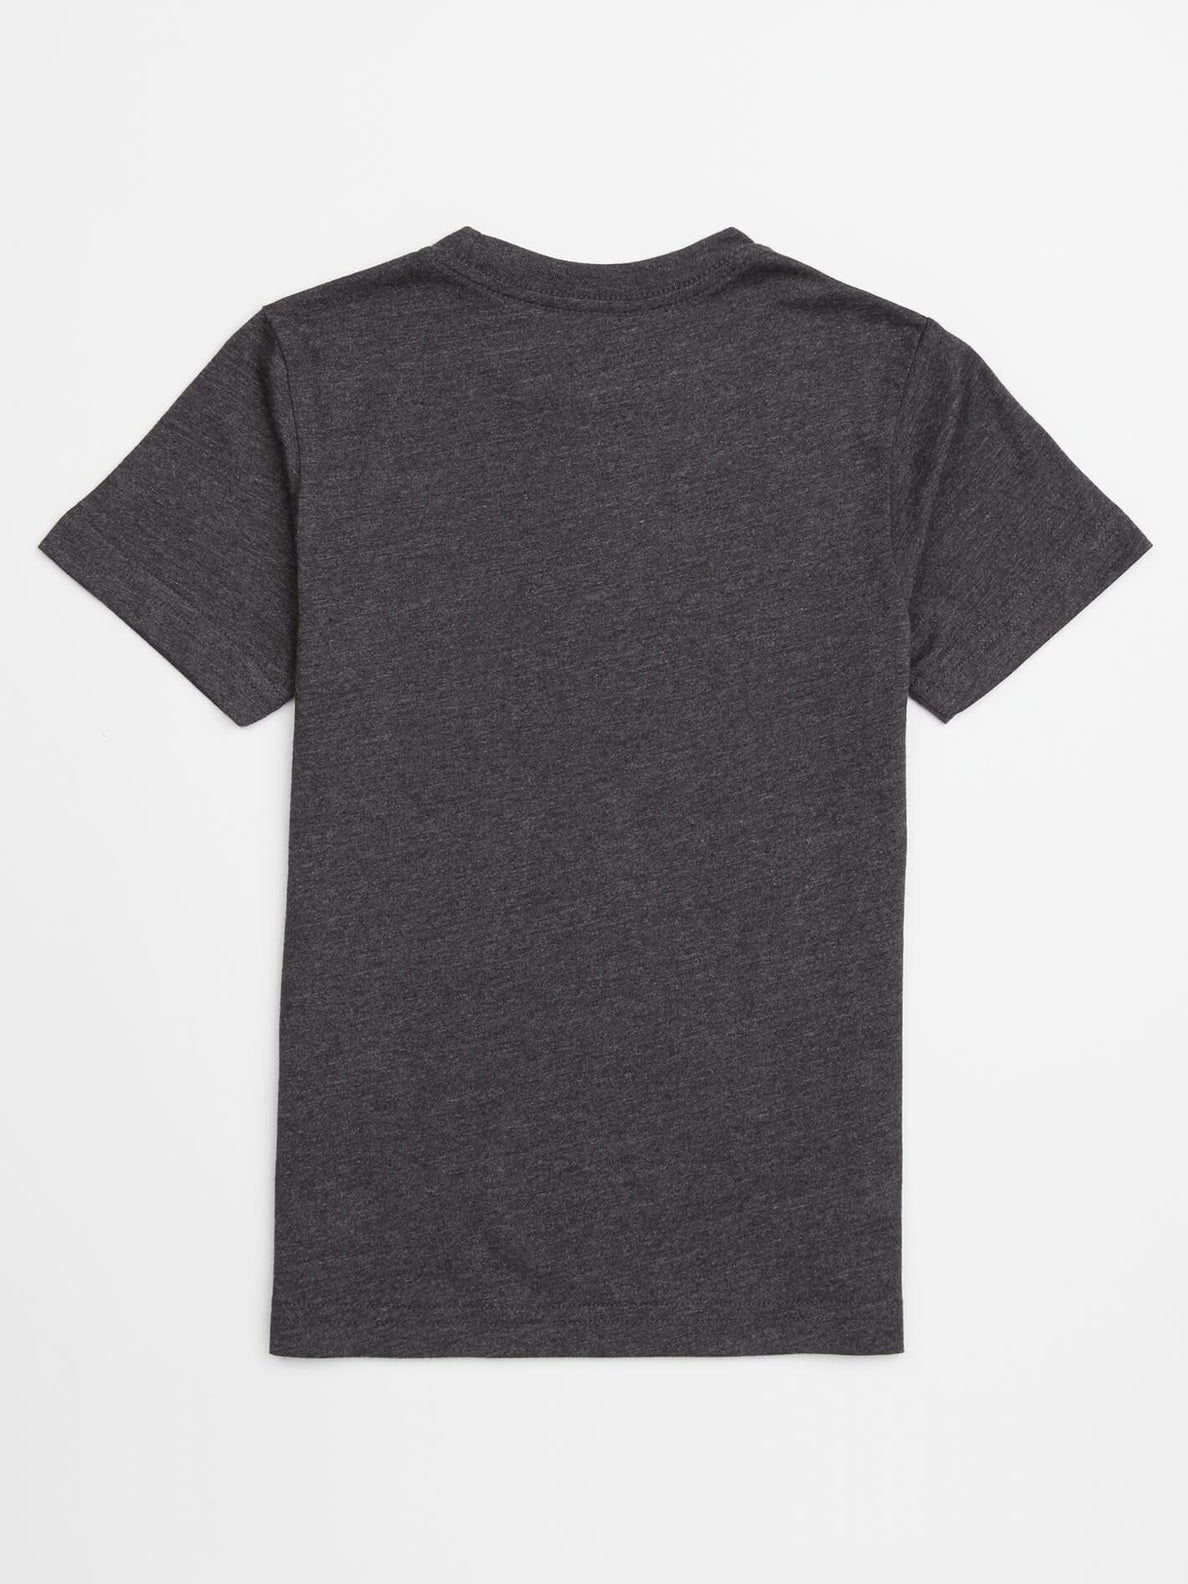 Little Boys Lo Tech Tee In Heather Black, Back View